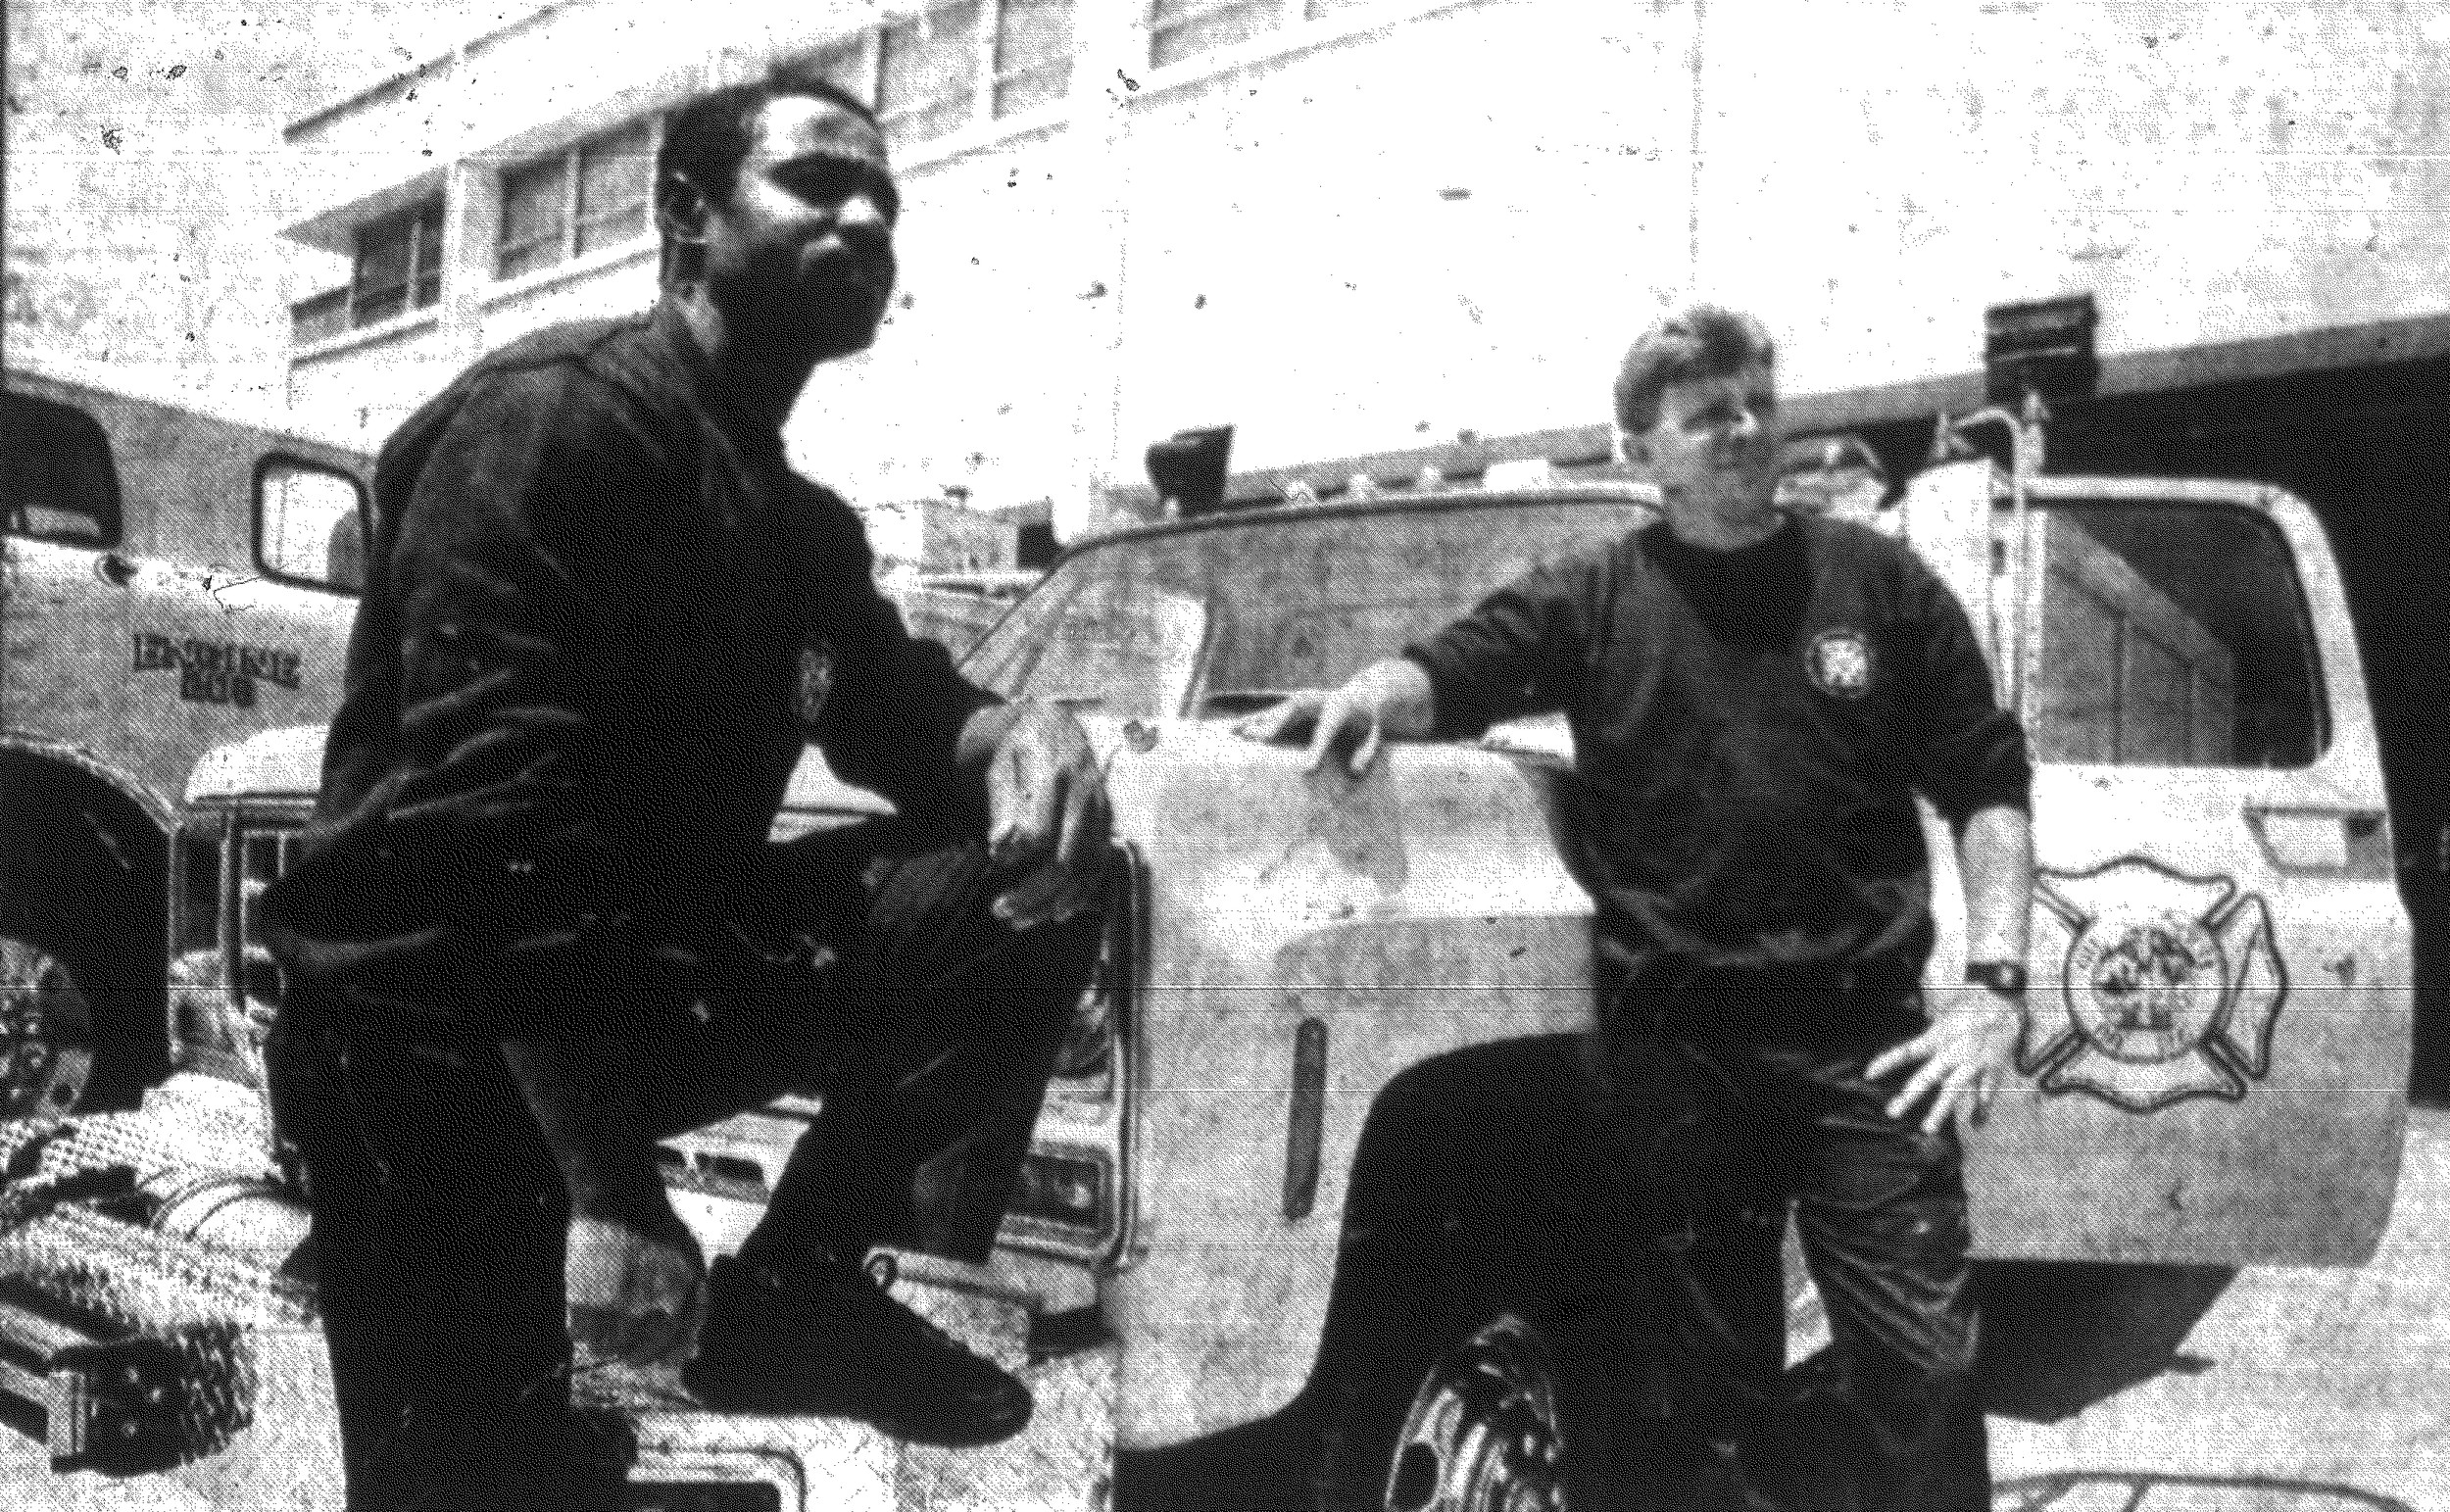 1992 - Sumter firefighters Johnnie Rose, left, and Dennis Powell stand with the city's new emergency truck. With the help of a local manufacturer, fire crews made the truck for about $10,000, $50,000 less than the price of a new truck.